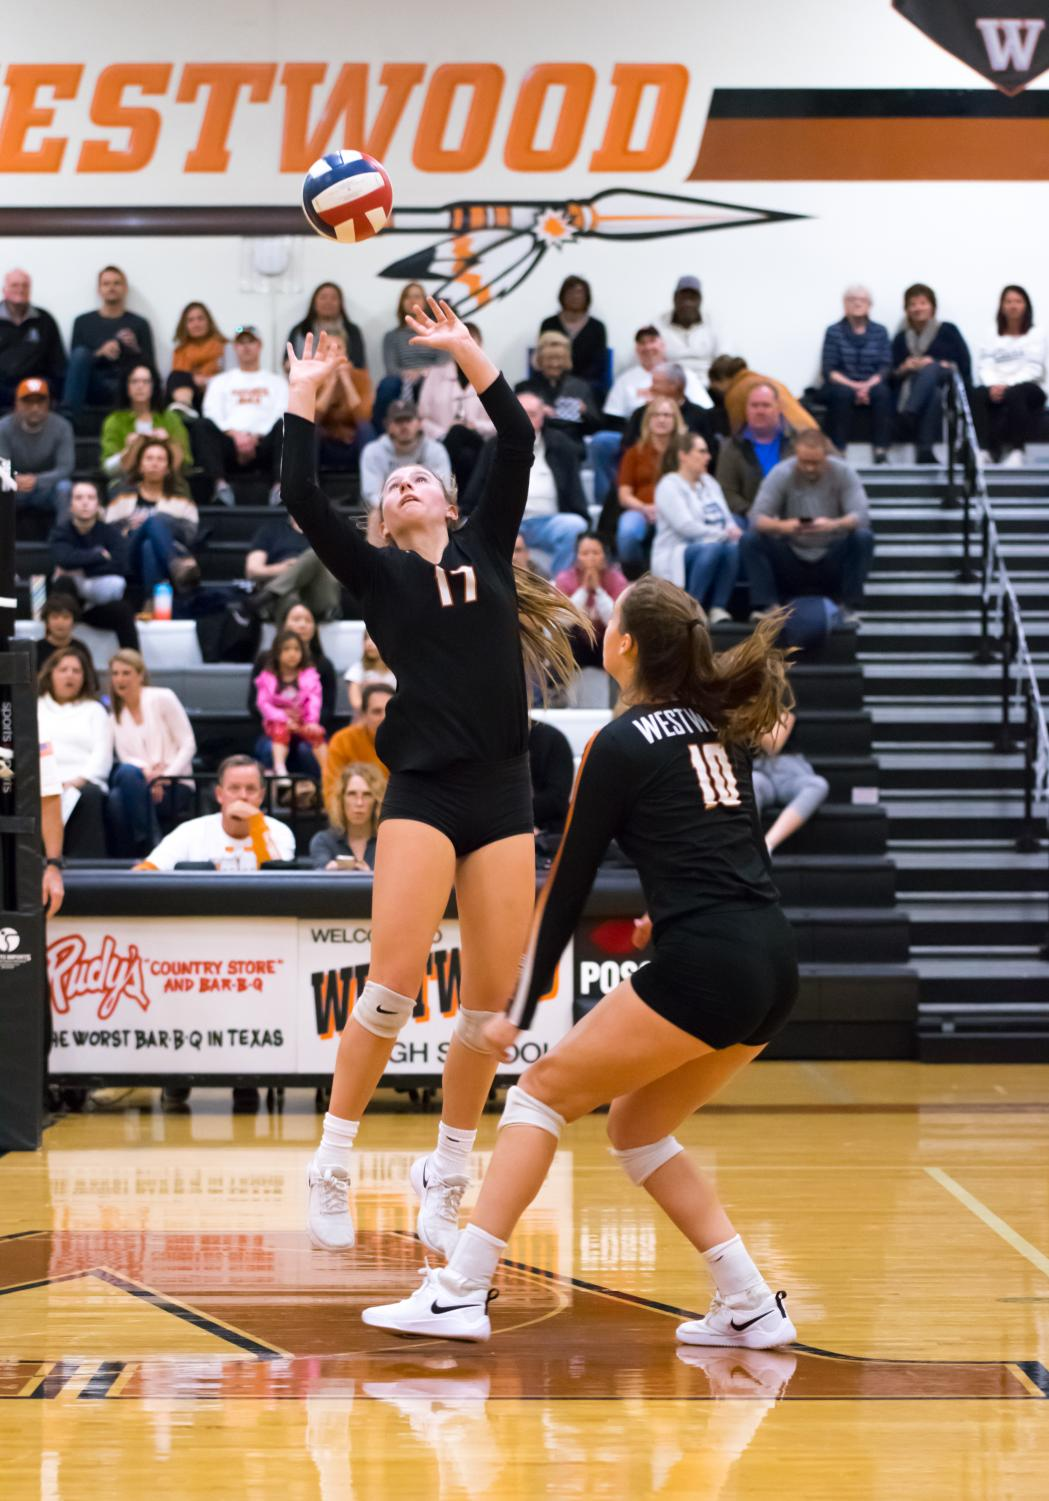 Kenzie+Beckham+%2721+sets+the+ball+for+Audrey+Quesnel+%2720.+Winning+the+point%2C+the+Lady+Warriors+keep+their+early+on+lead+during+the+second+set.